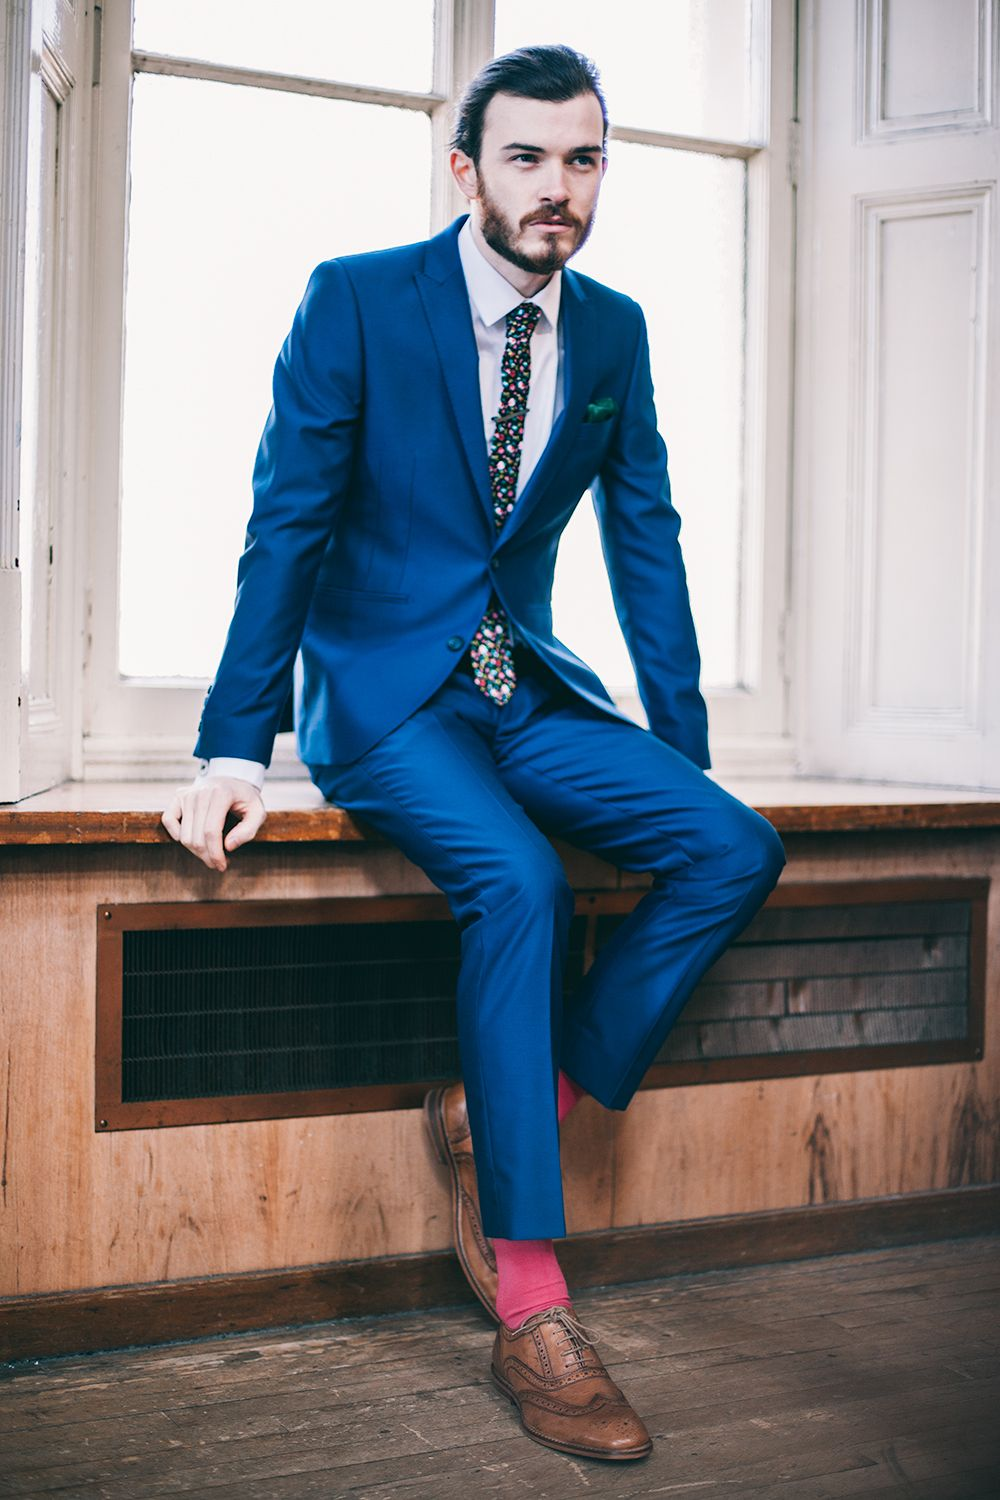 e93f185588e4 Flash a pink sock with your blue suit    Slaters SS15 Collection     Menswear Style    Menswear Details